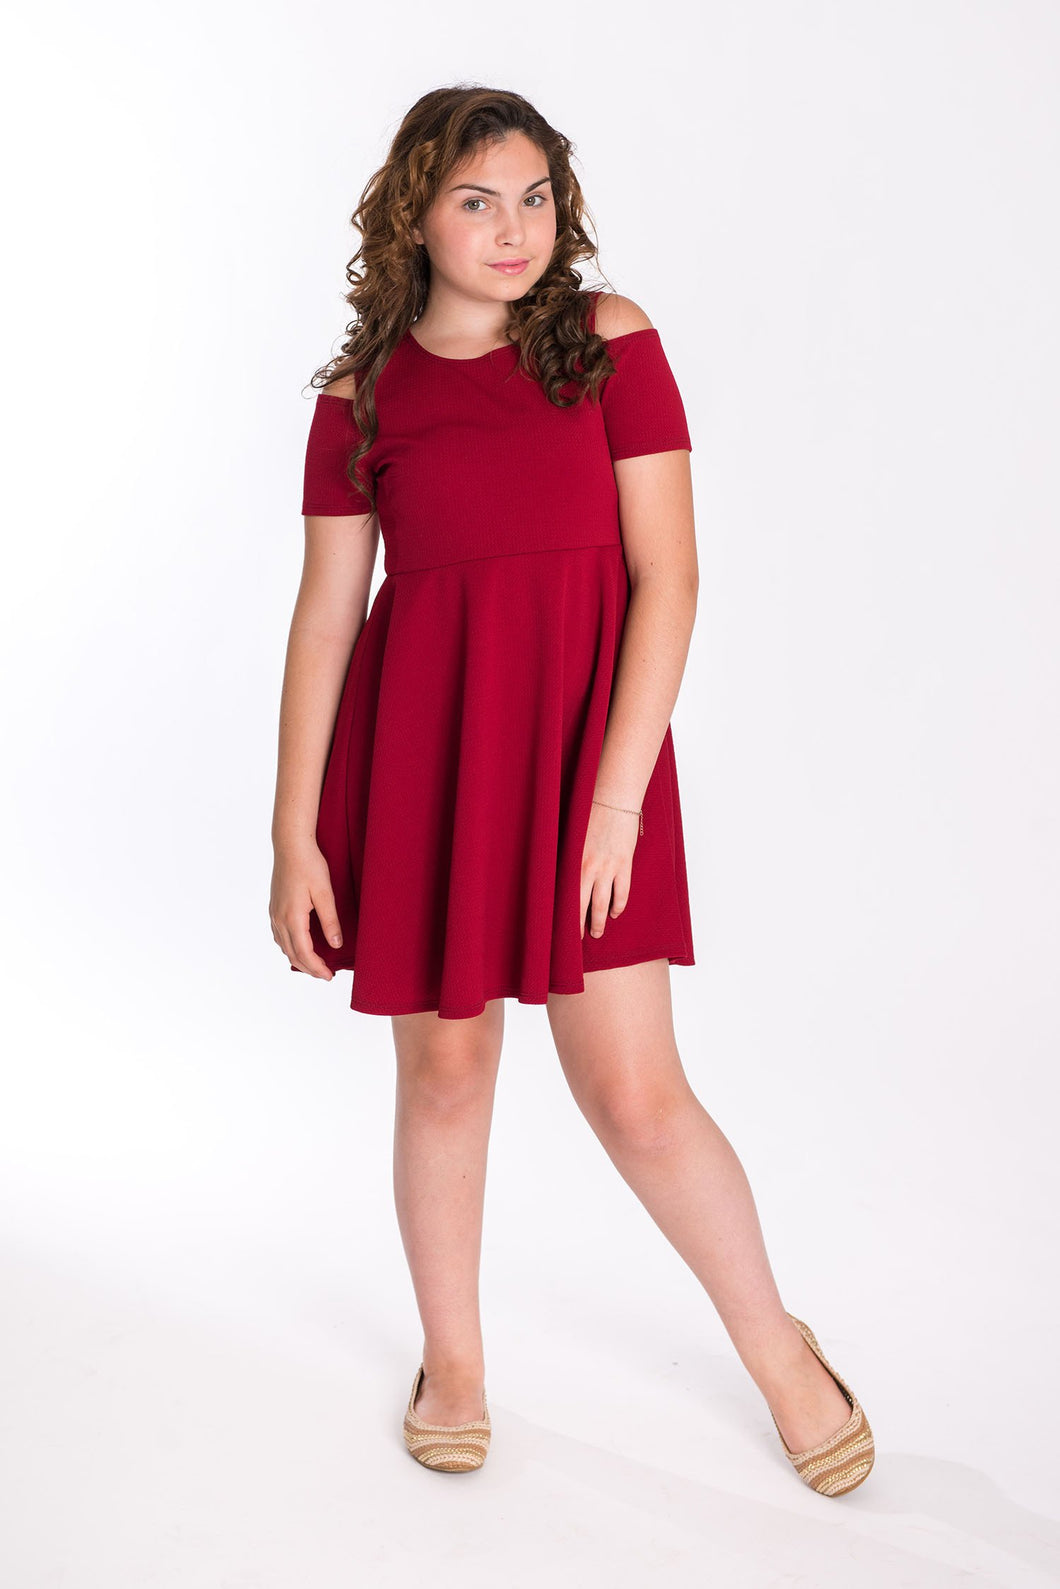 Young girl wearing this kids plus size Cold Shoulder Textured Skater Dress in Red With Necklace, perfect for holidays!